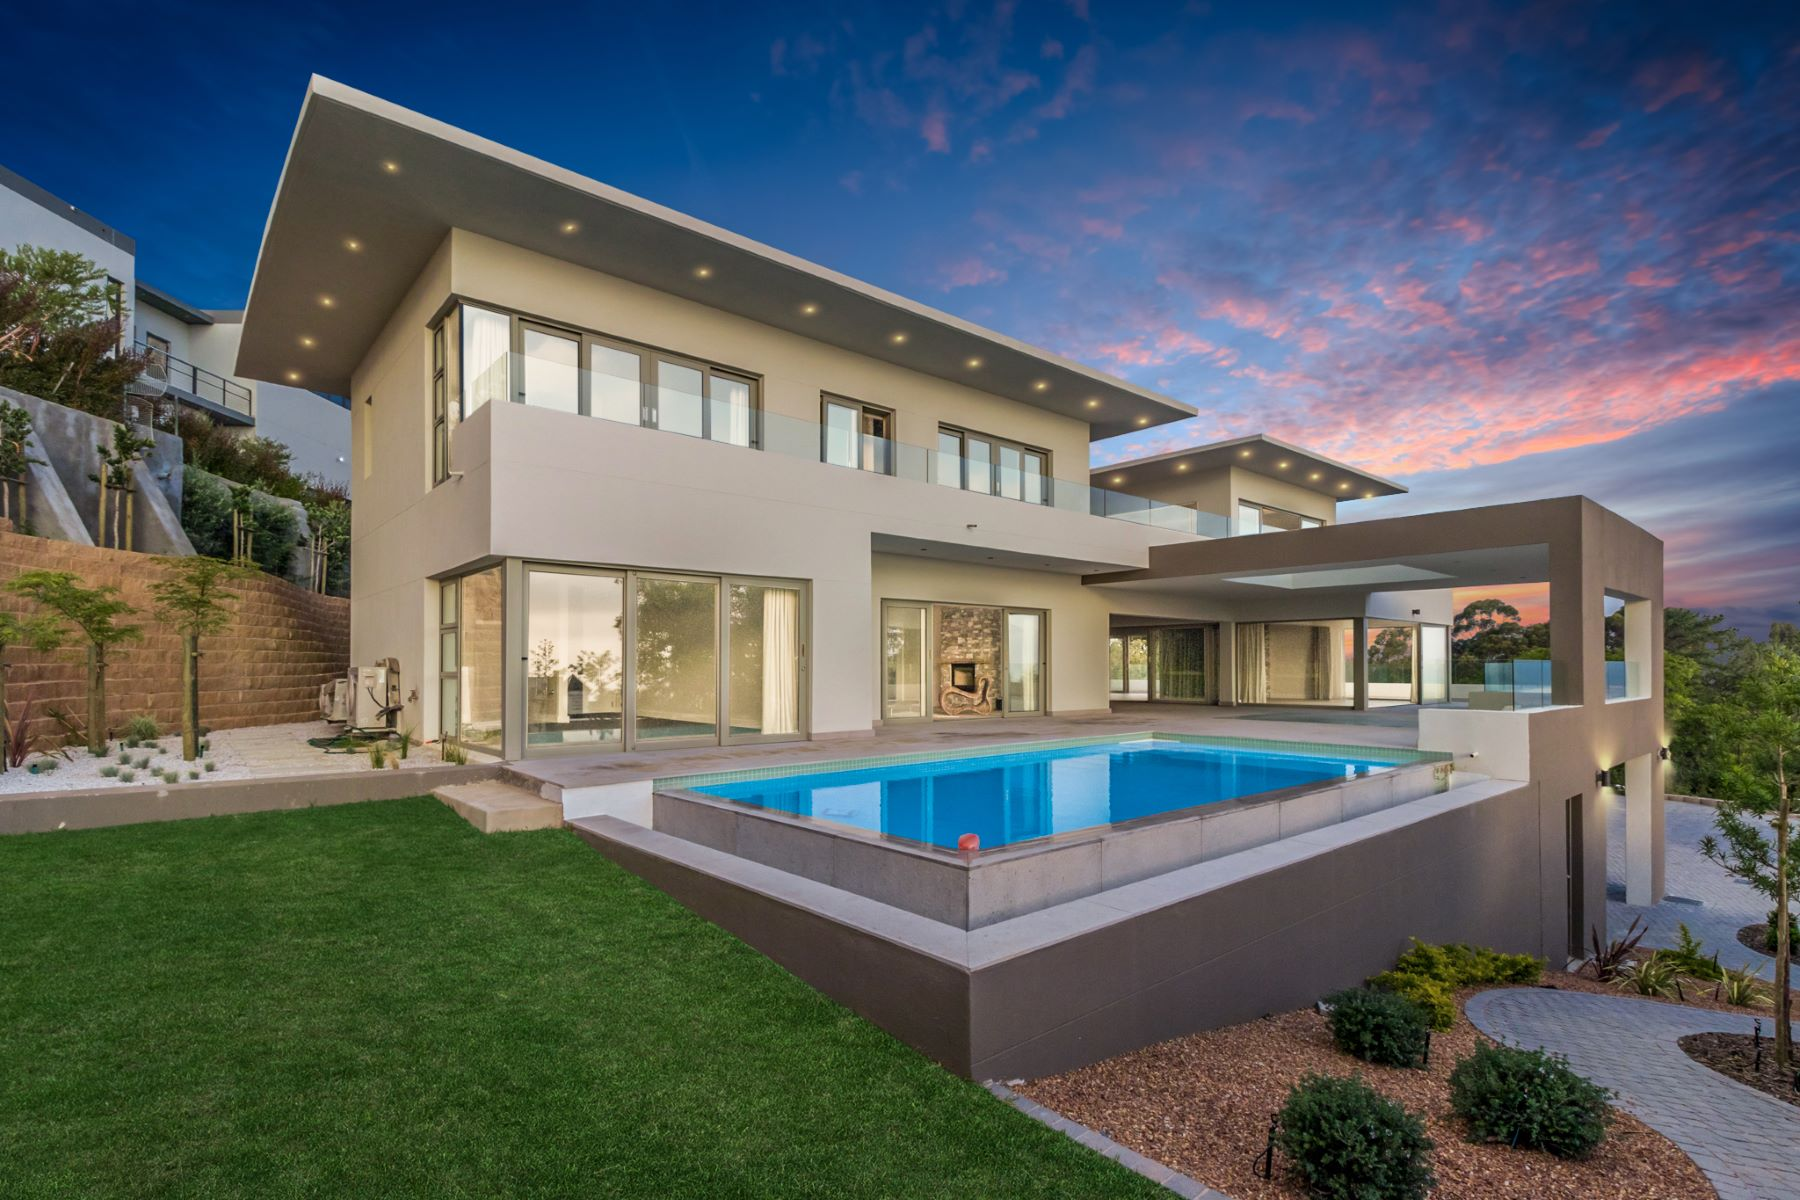 Single Family Homes por un Venta en Brand new masterpiece set high up in a tranquil setting 58 Silverboomkloof Spanish Farm Somerset West, Provincia Occidental Del Cabo 7130 Sudáfrica